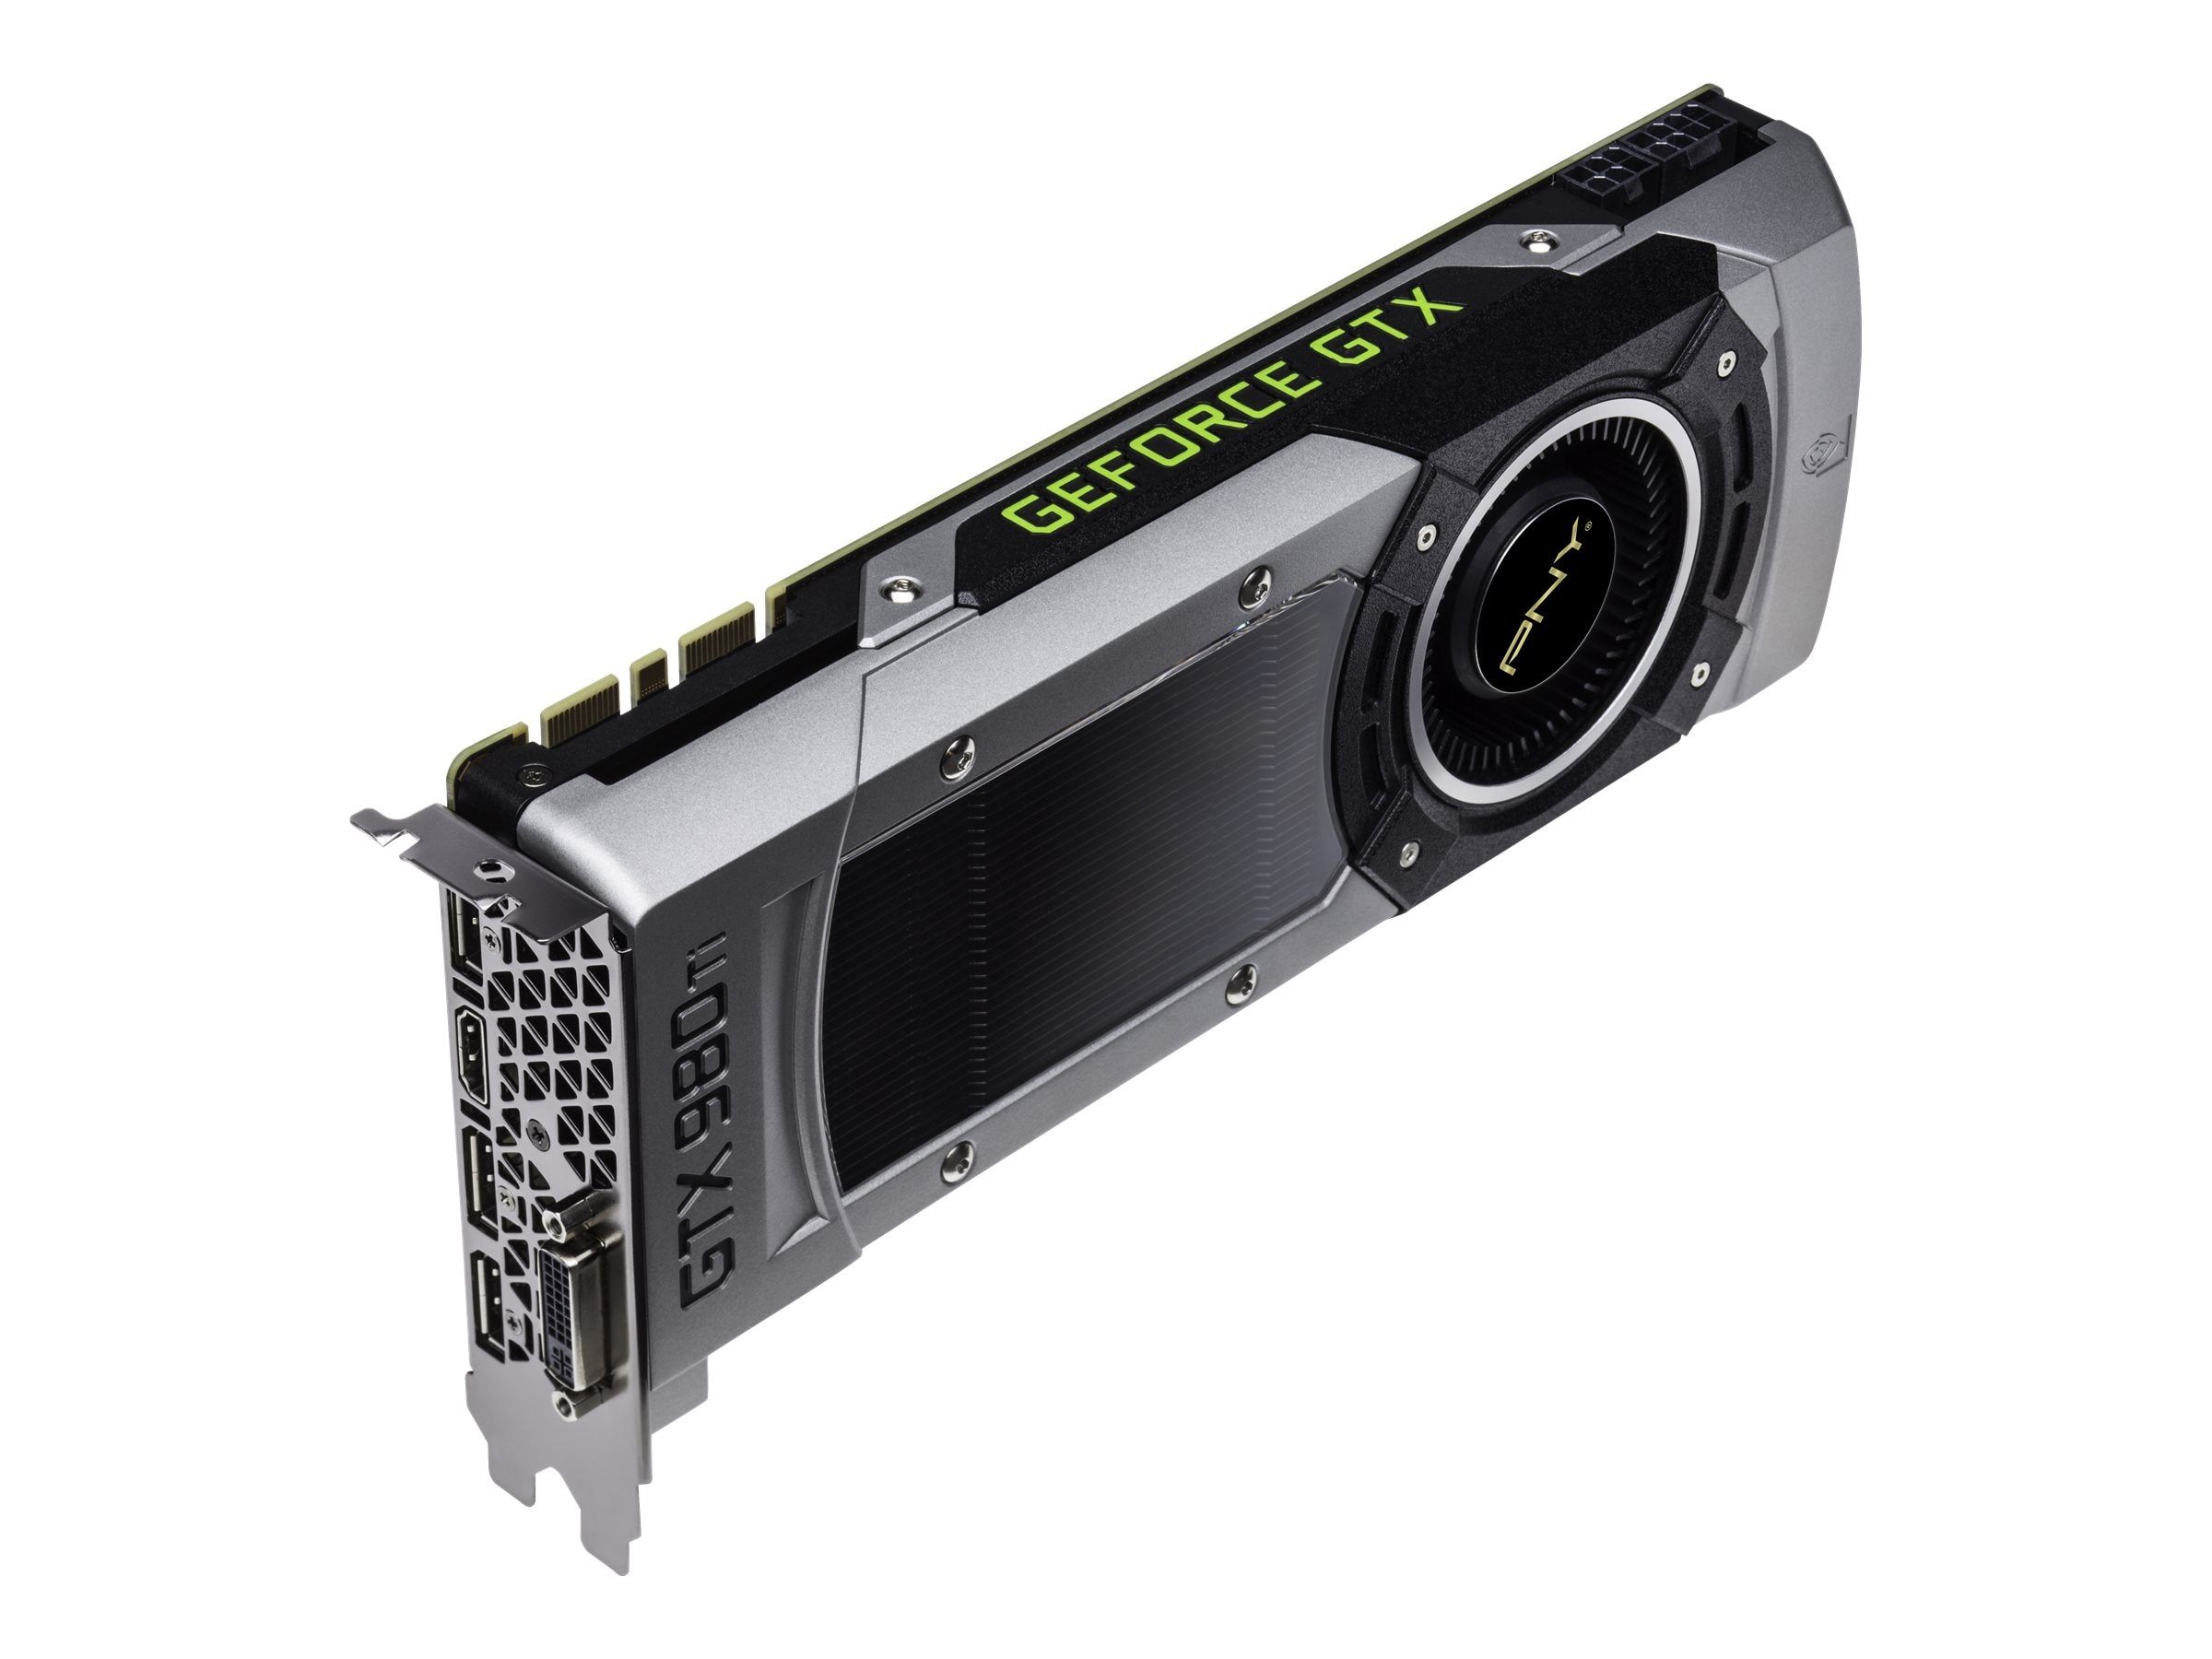 PNY GeForce GTX 980 Ti PCIe 3.0 x16 Graphics Card, 6GB GDDR5, VCGGTX980T6XPB-CG, 22430079, Graphics/Video Accelerators